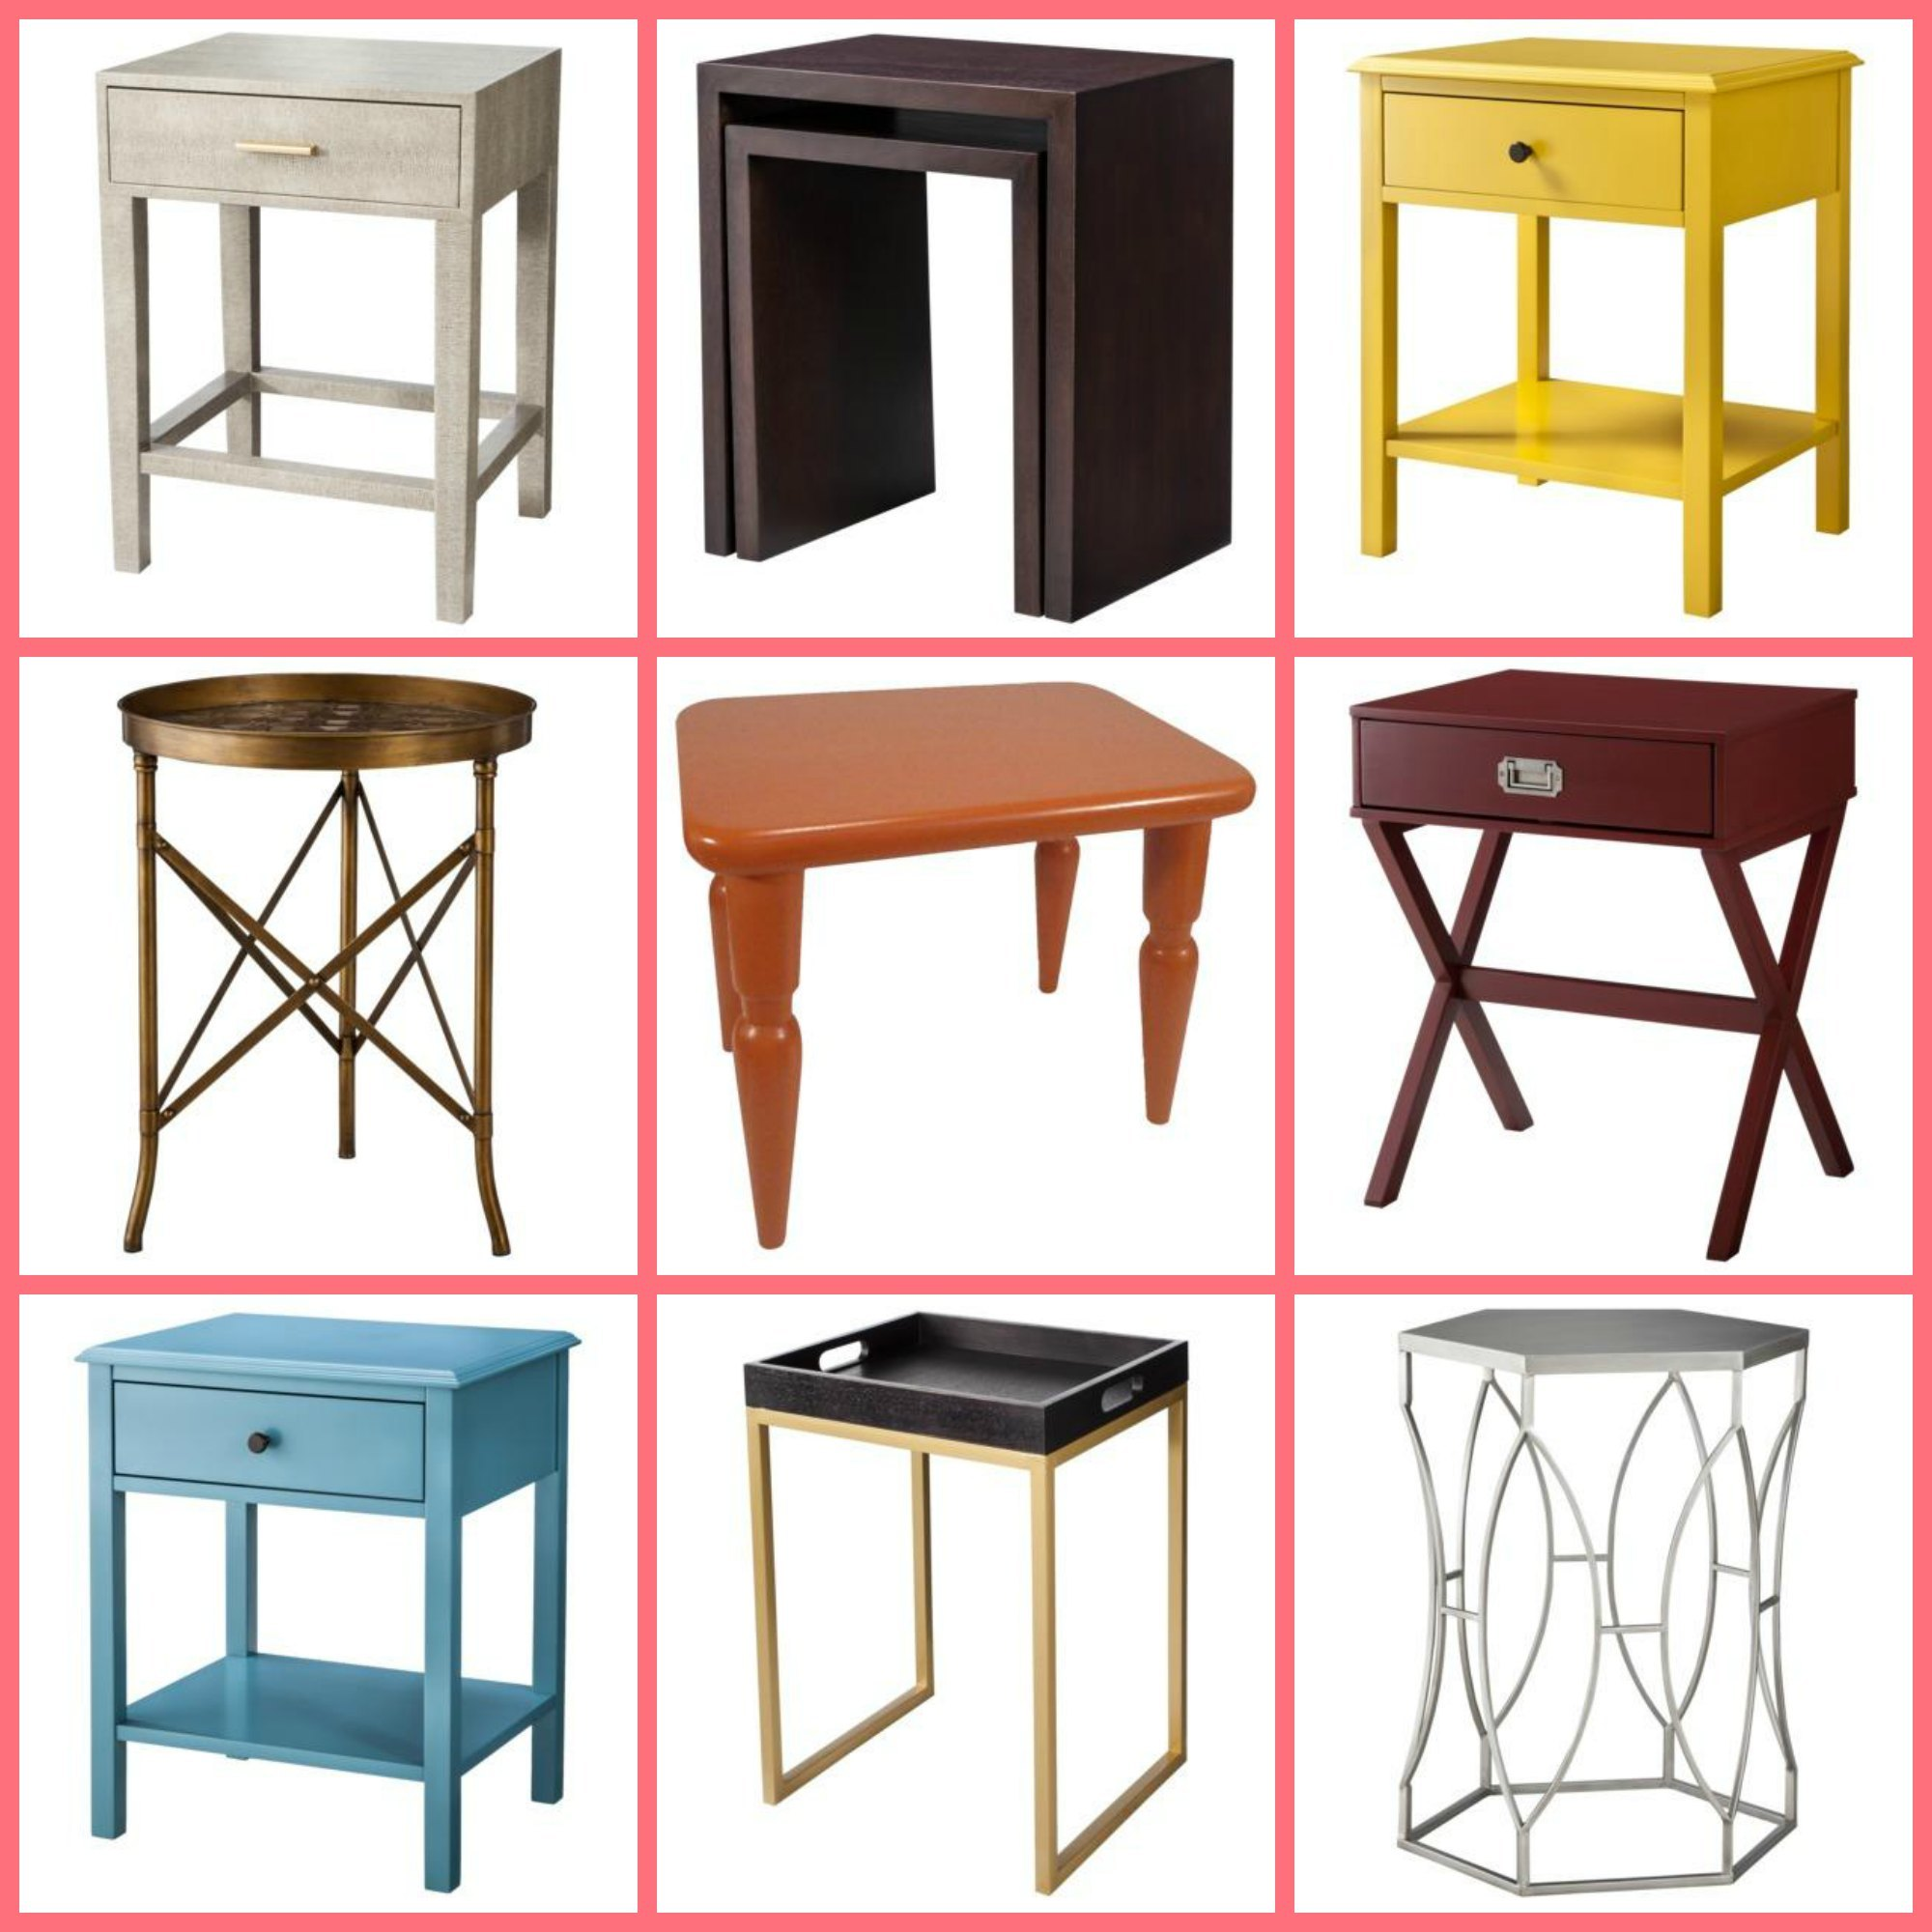 target threshold accent tables take your targertthr fretwork table clockwise from top left west elm wood bench night lamp corner telephone stand spindle legs laptop side college